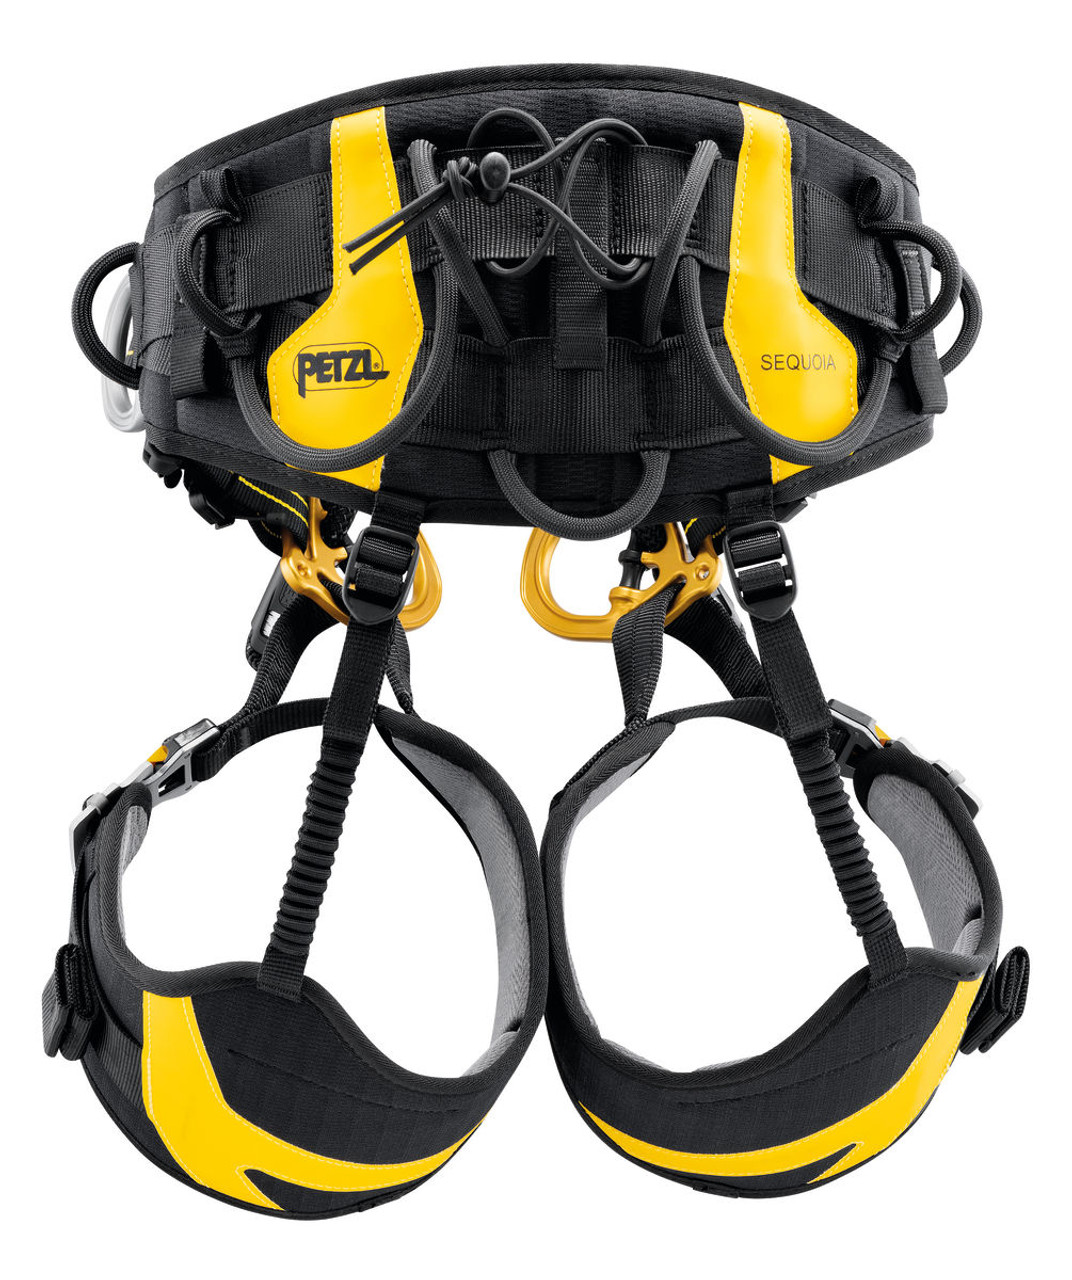 HARNESS 2019 PETZL SEQUOIA ARBORIST SADDLE